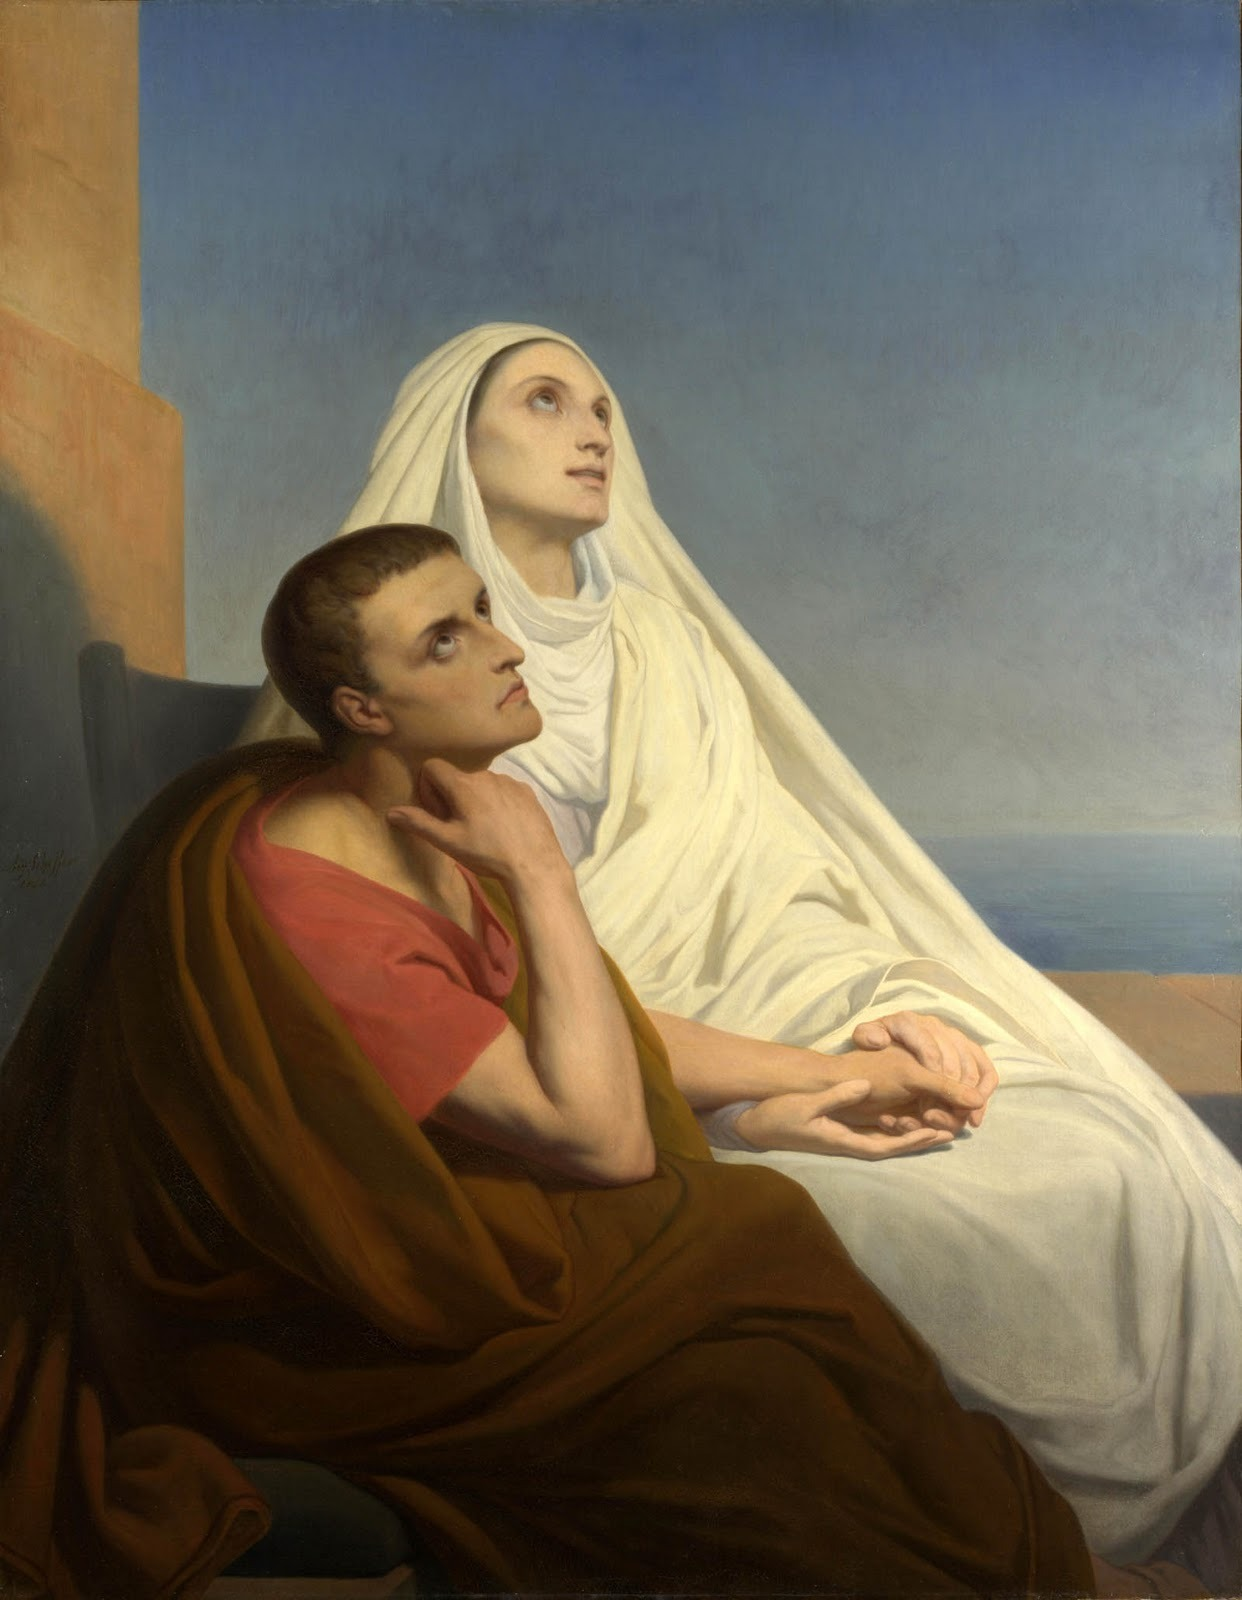 Saints Augustine and Monica, 1854. Artist: Scheffer, Ary (1795-1858)